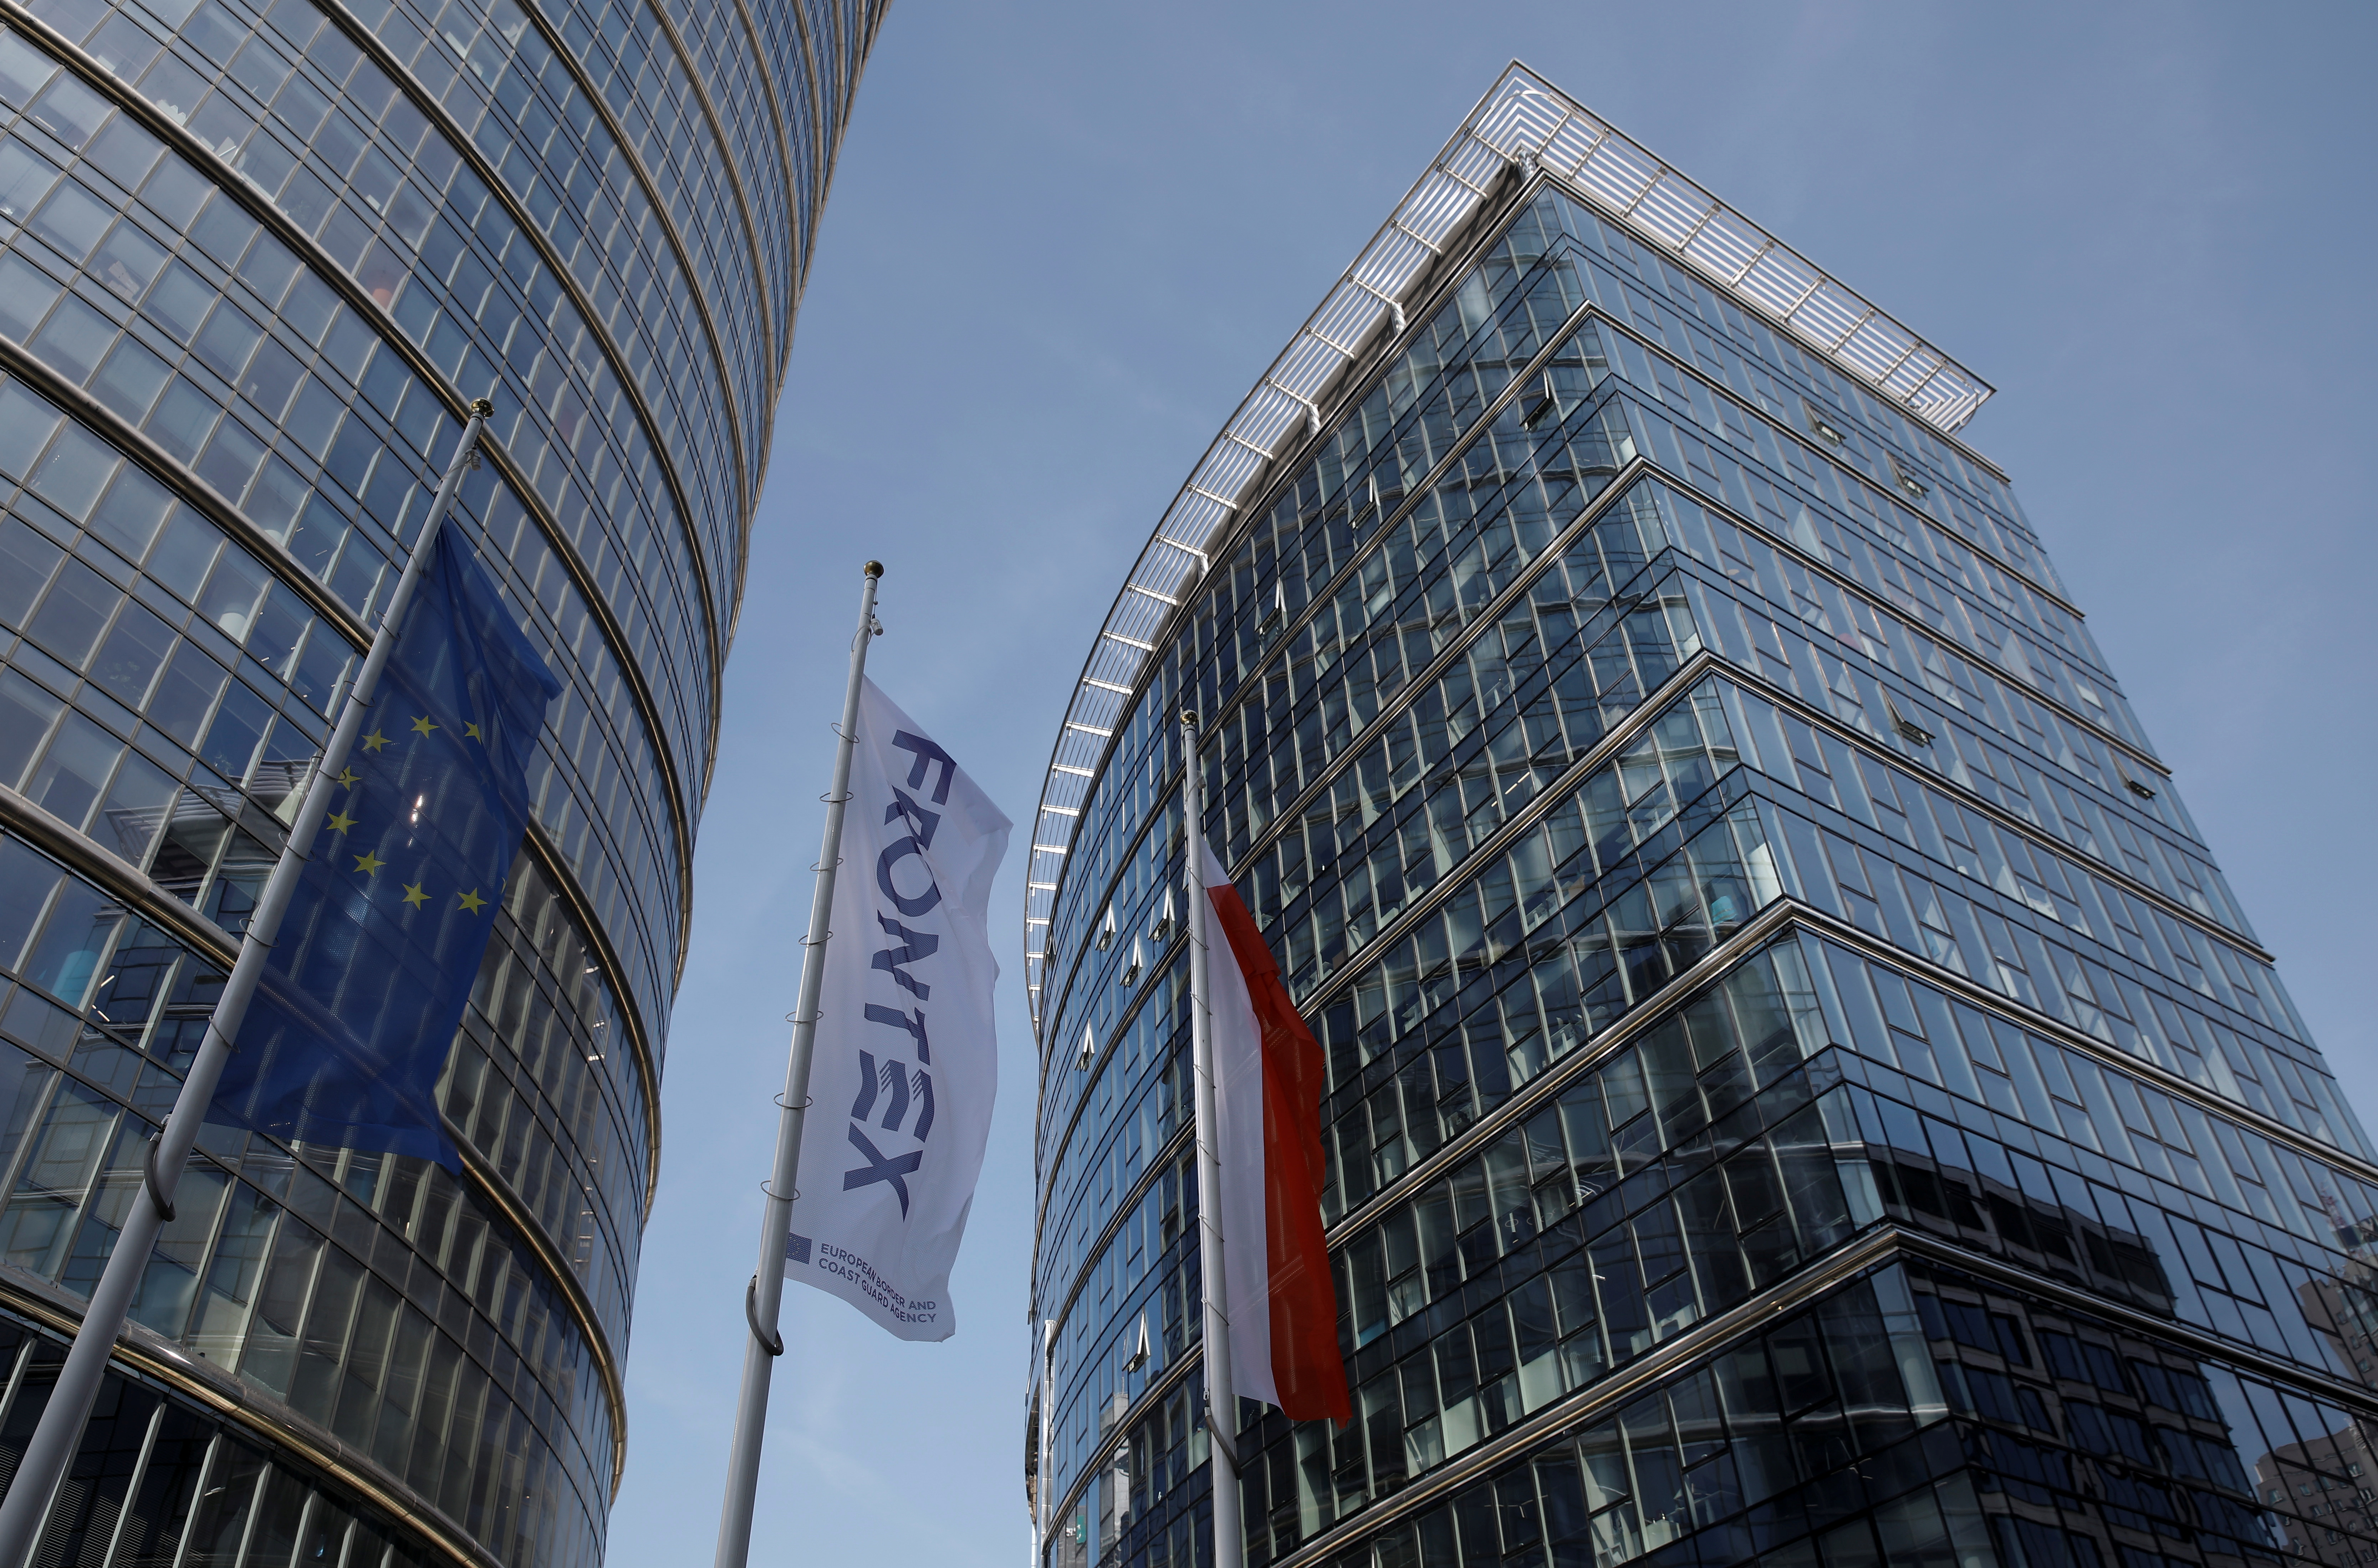 A view shows the headquarters of EU border agency Frontex in Warsaw, Poland September 8, 2021. REUTERS/Kacper Pempel